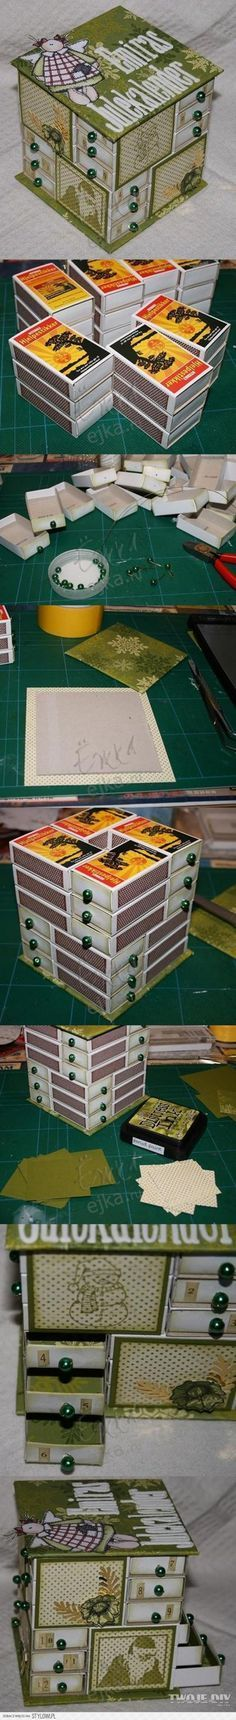 Altered art tiny drawers created with match boxes-would be cool to do a similar item with the card boxes I have currently being the drawers